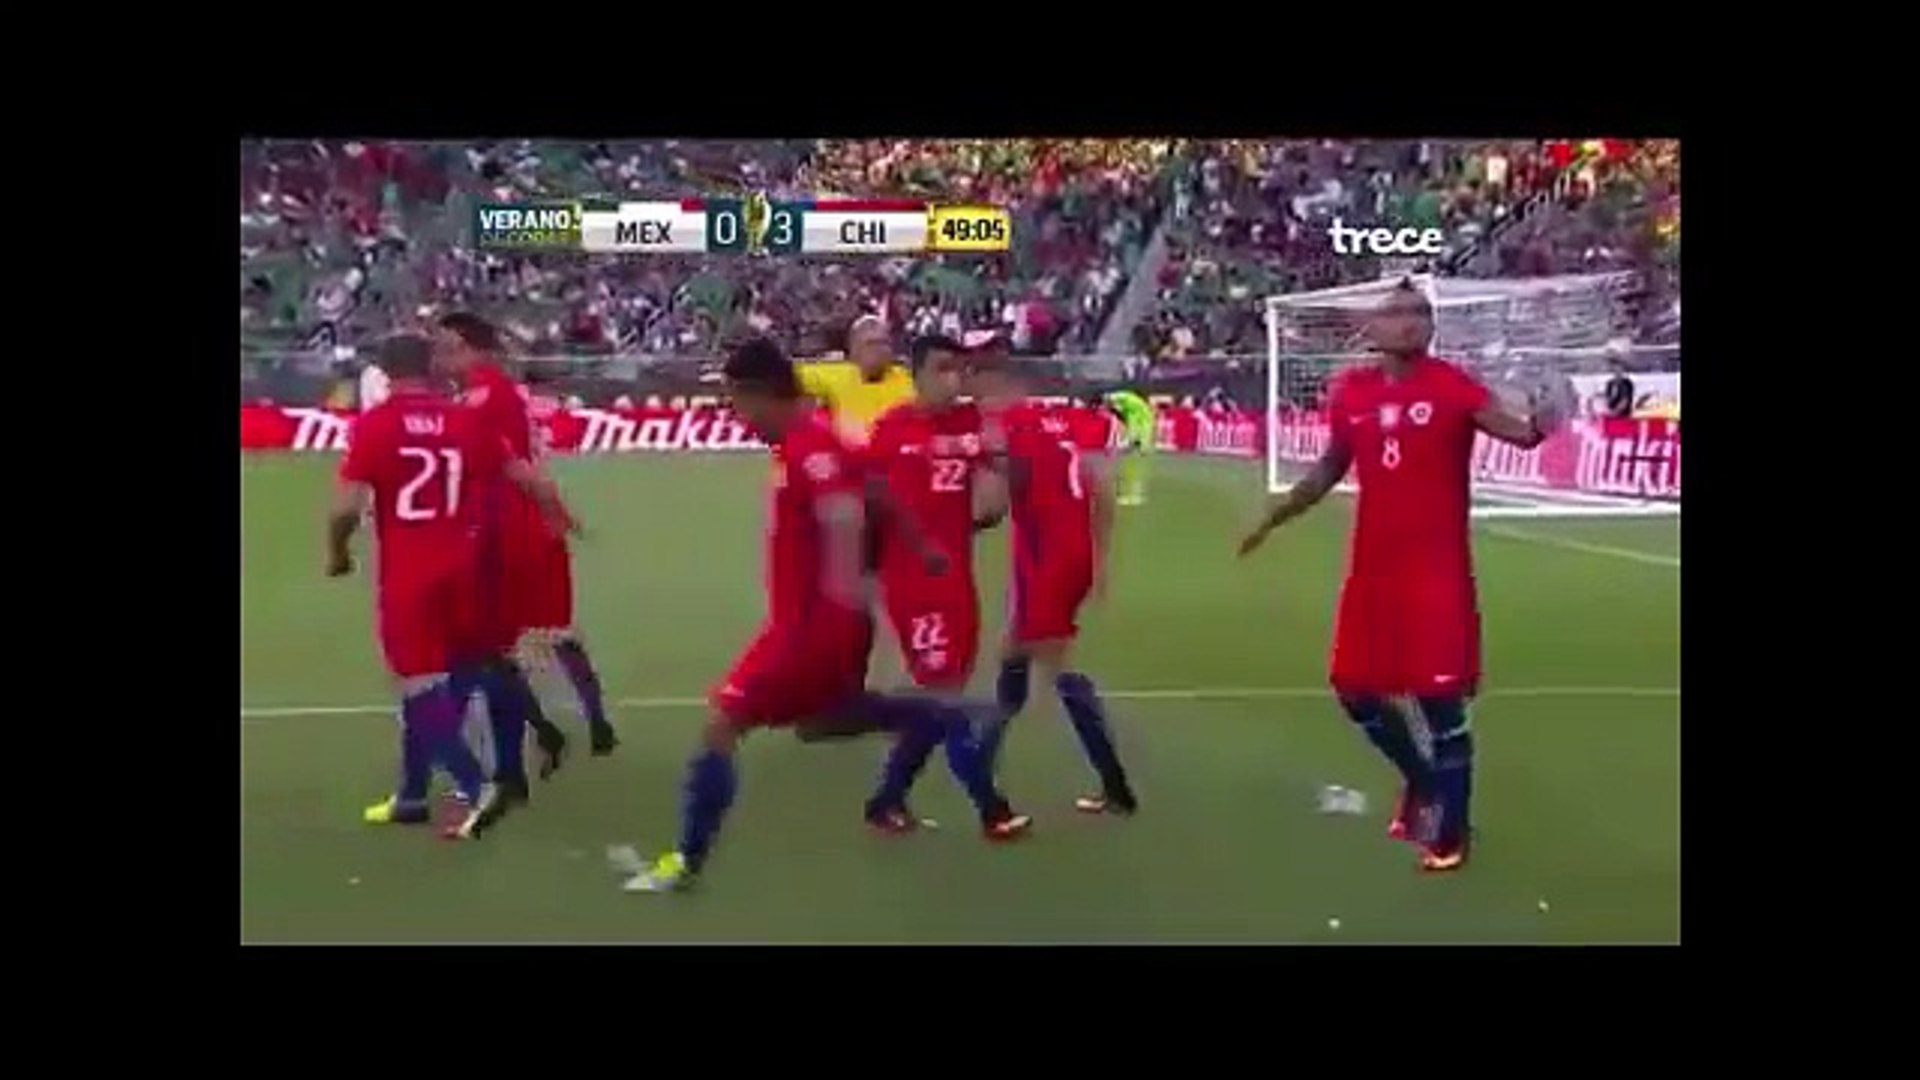 México vs Chile 0-7 Copa America 2016 TV AZTECA FULL HD - VERGÜENZA NACIONAL